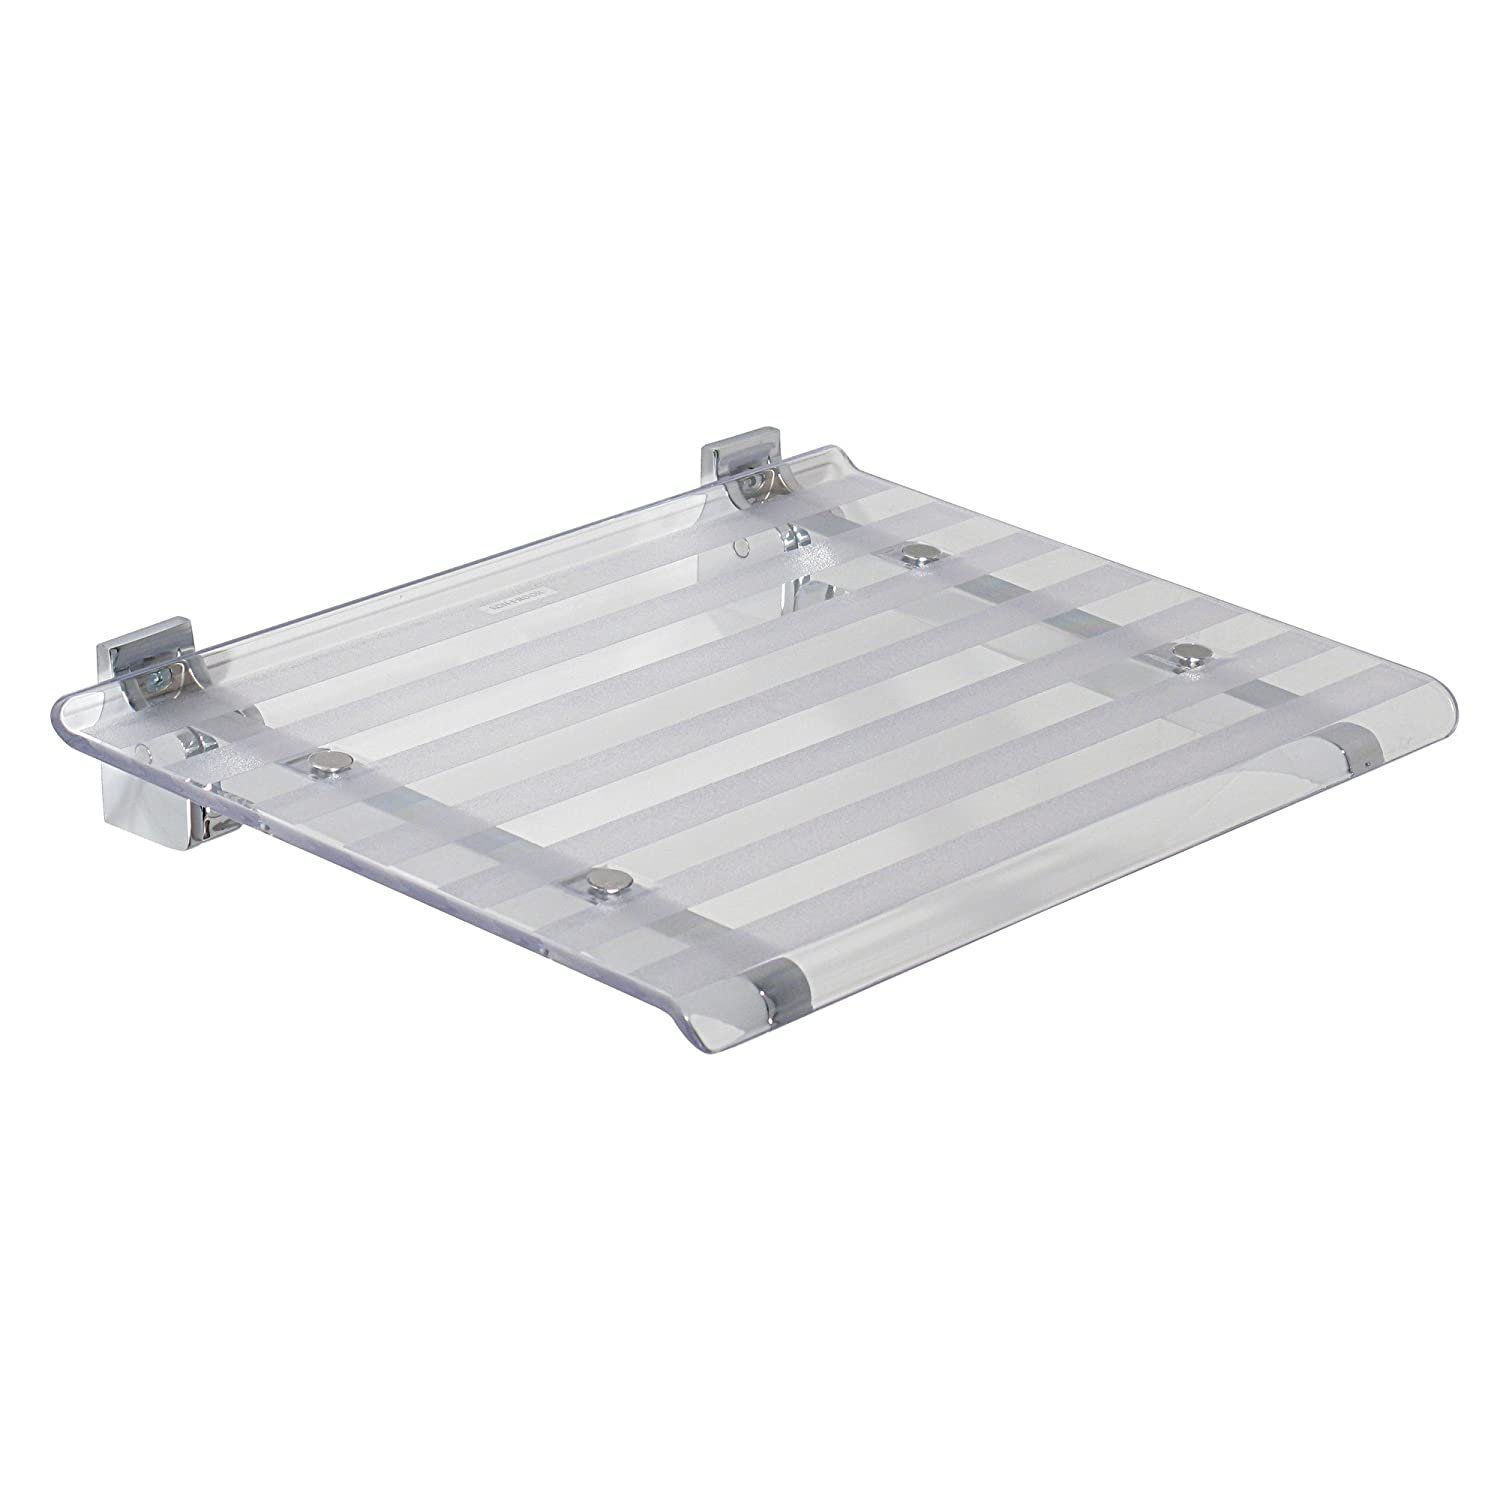 Transparent Koh-I-Noor - Folding Shower seat, Koh-I-Noor Collection Leo - bluee, in Stock